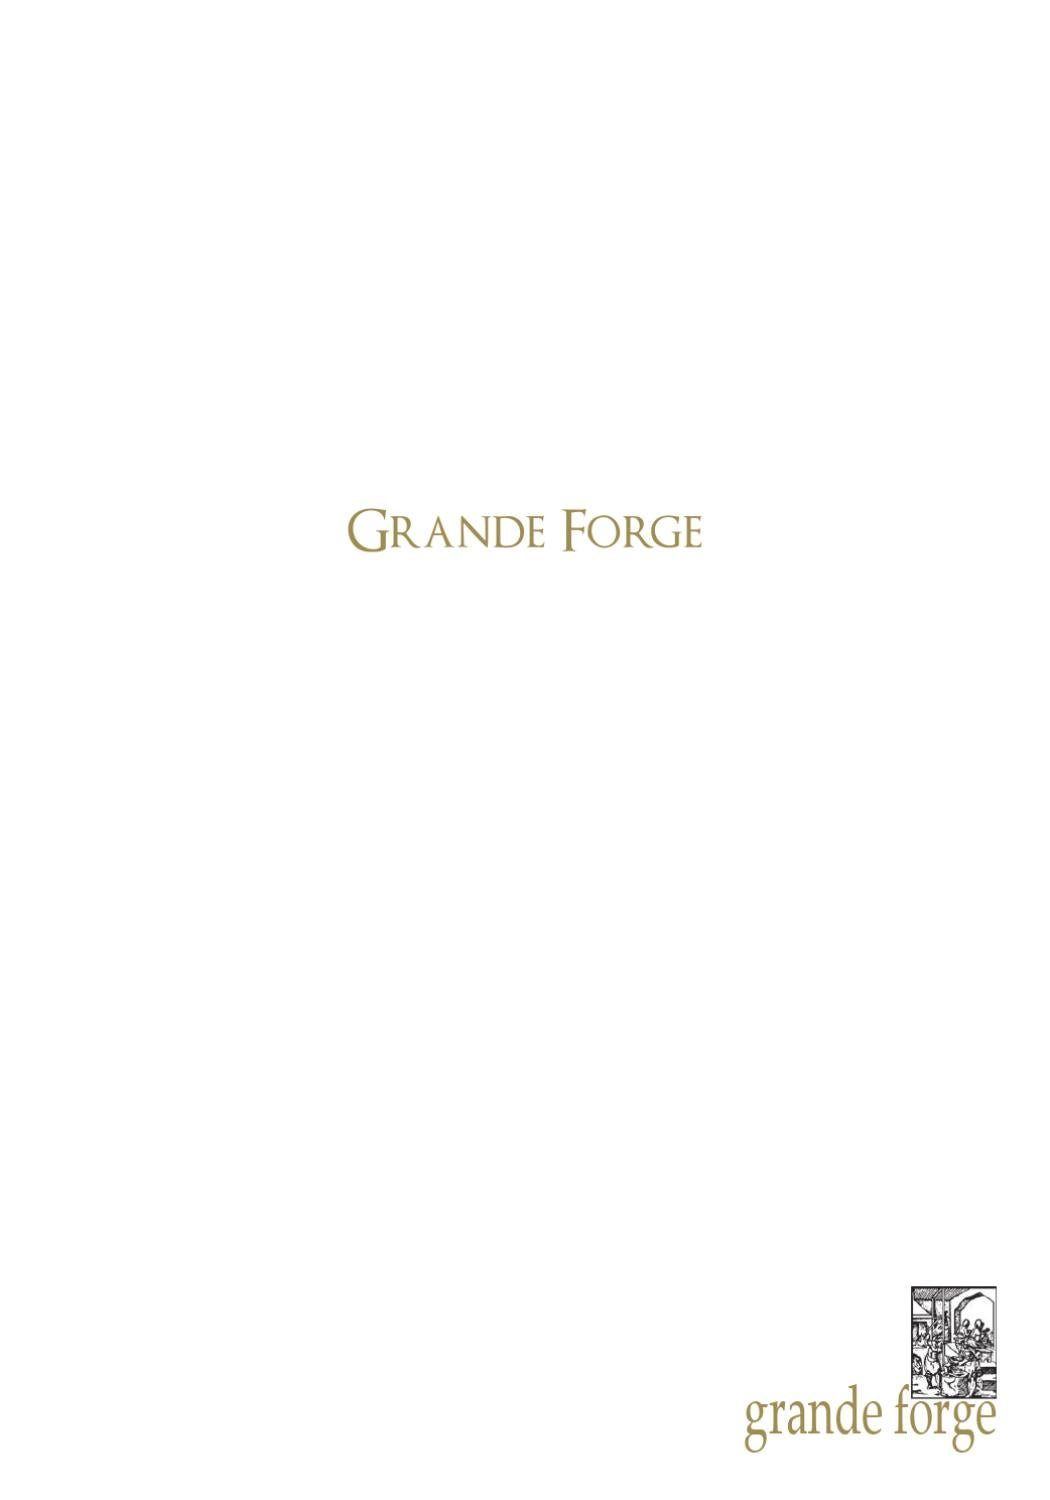 grande forge livre by schutt grande forge issuu. Black Bedroom Furniture Sets. Home Design Ideas